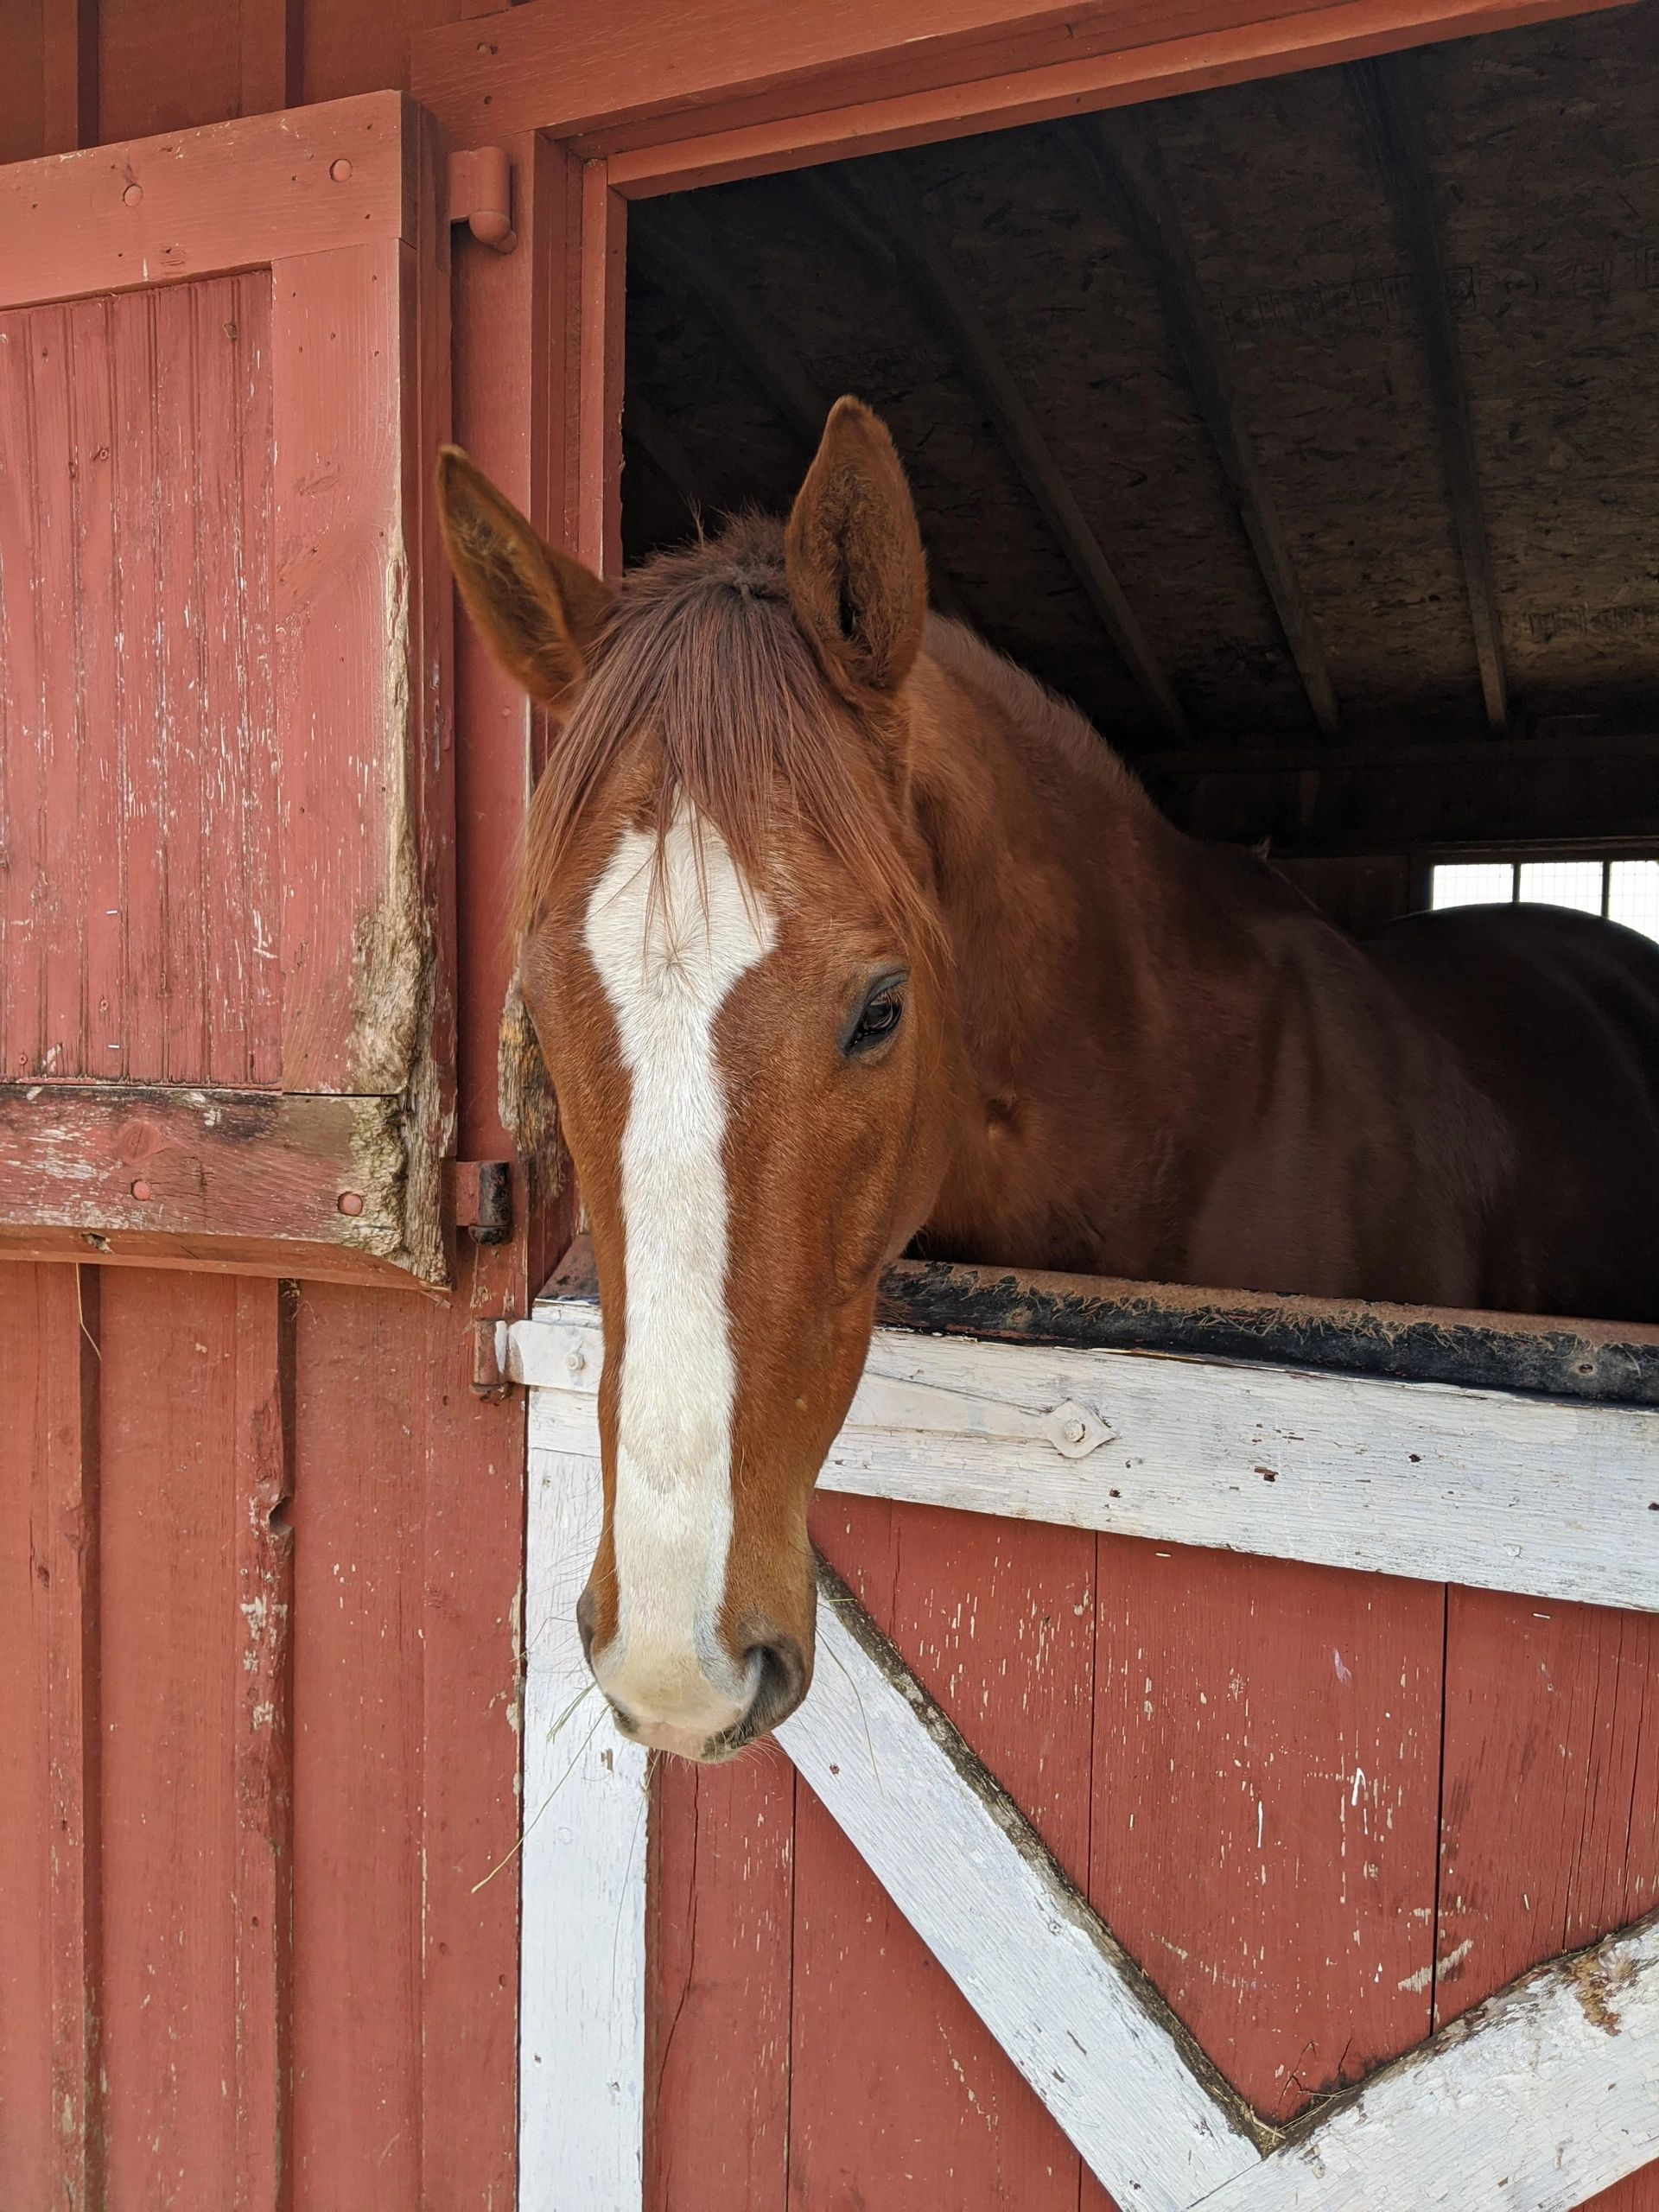 Chestnut gelding with large white blaze in red barn stall